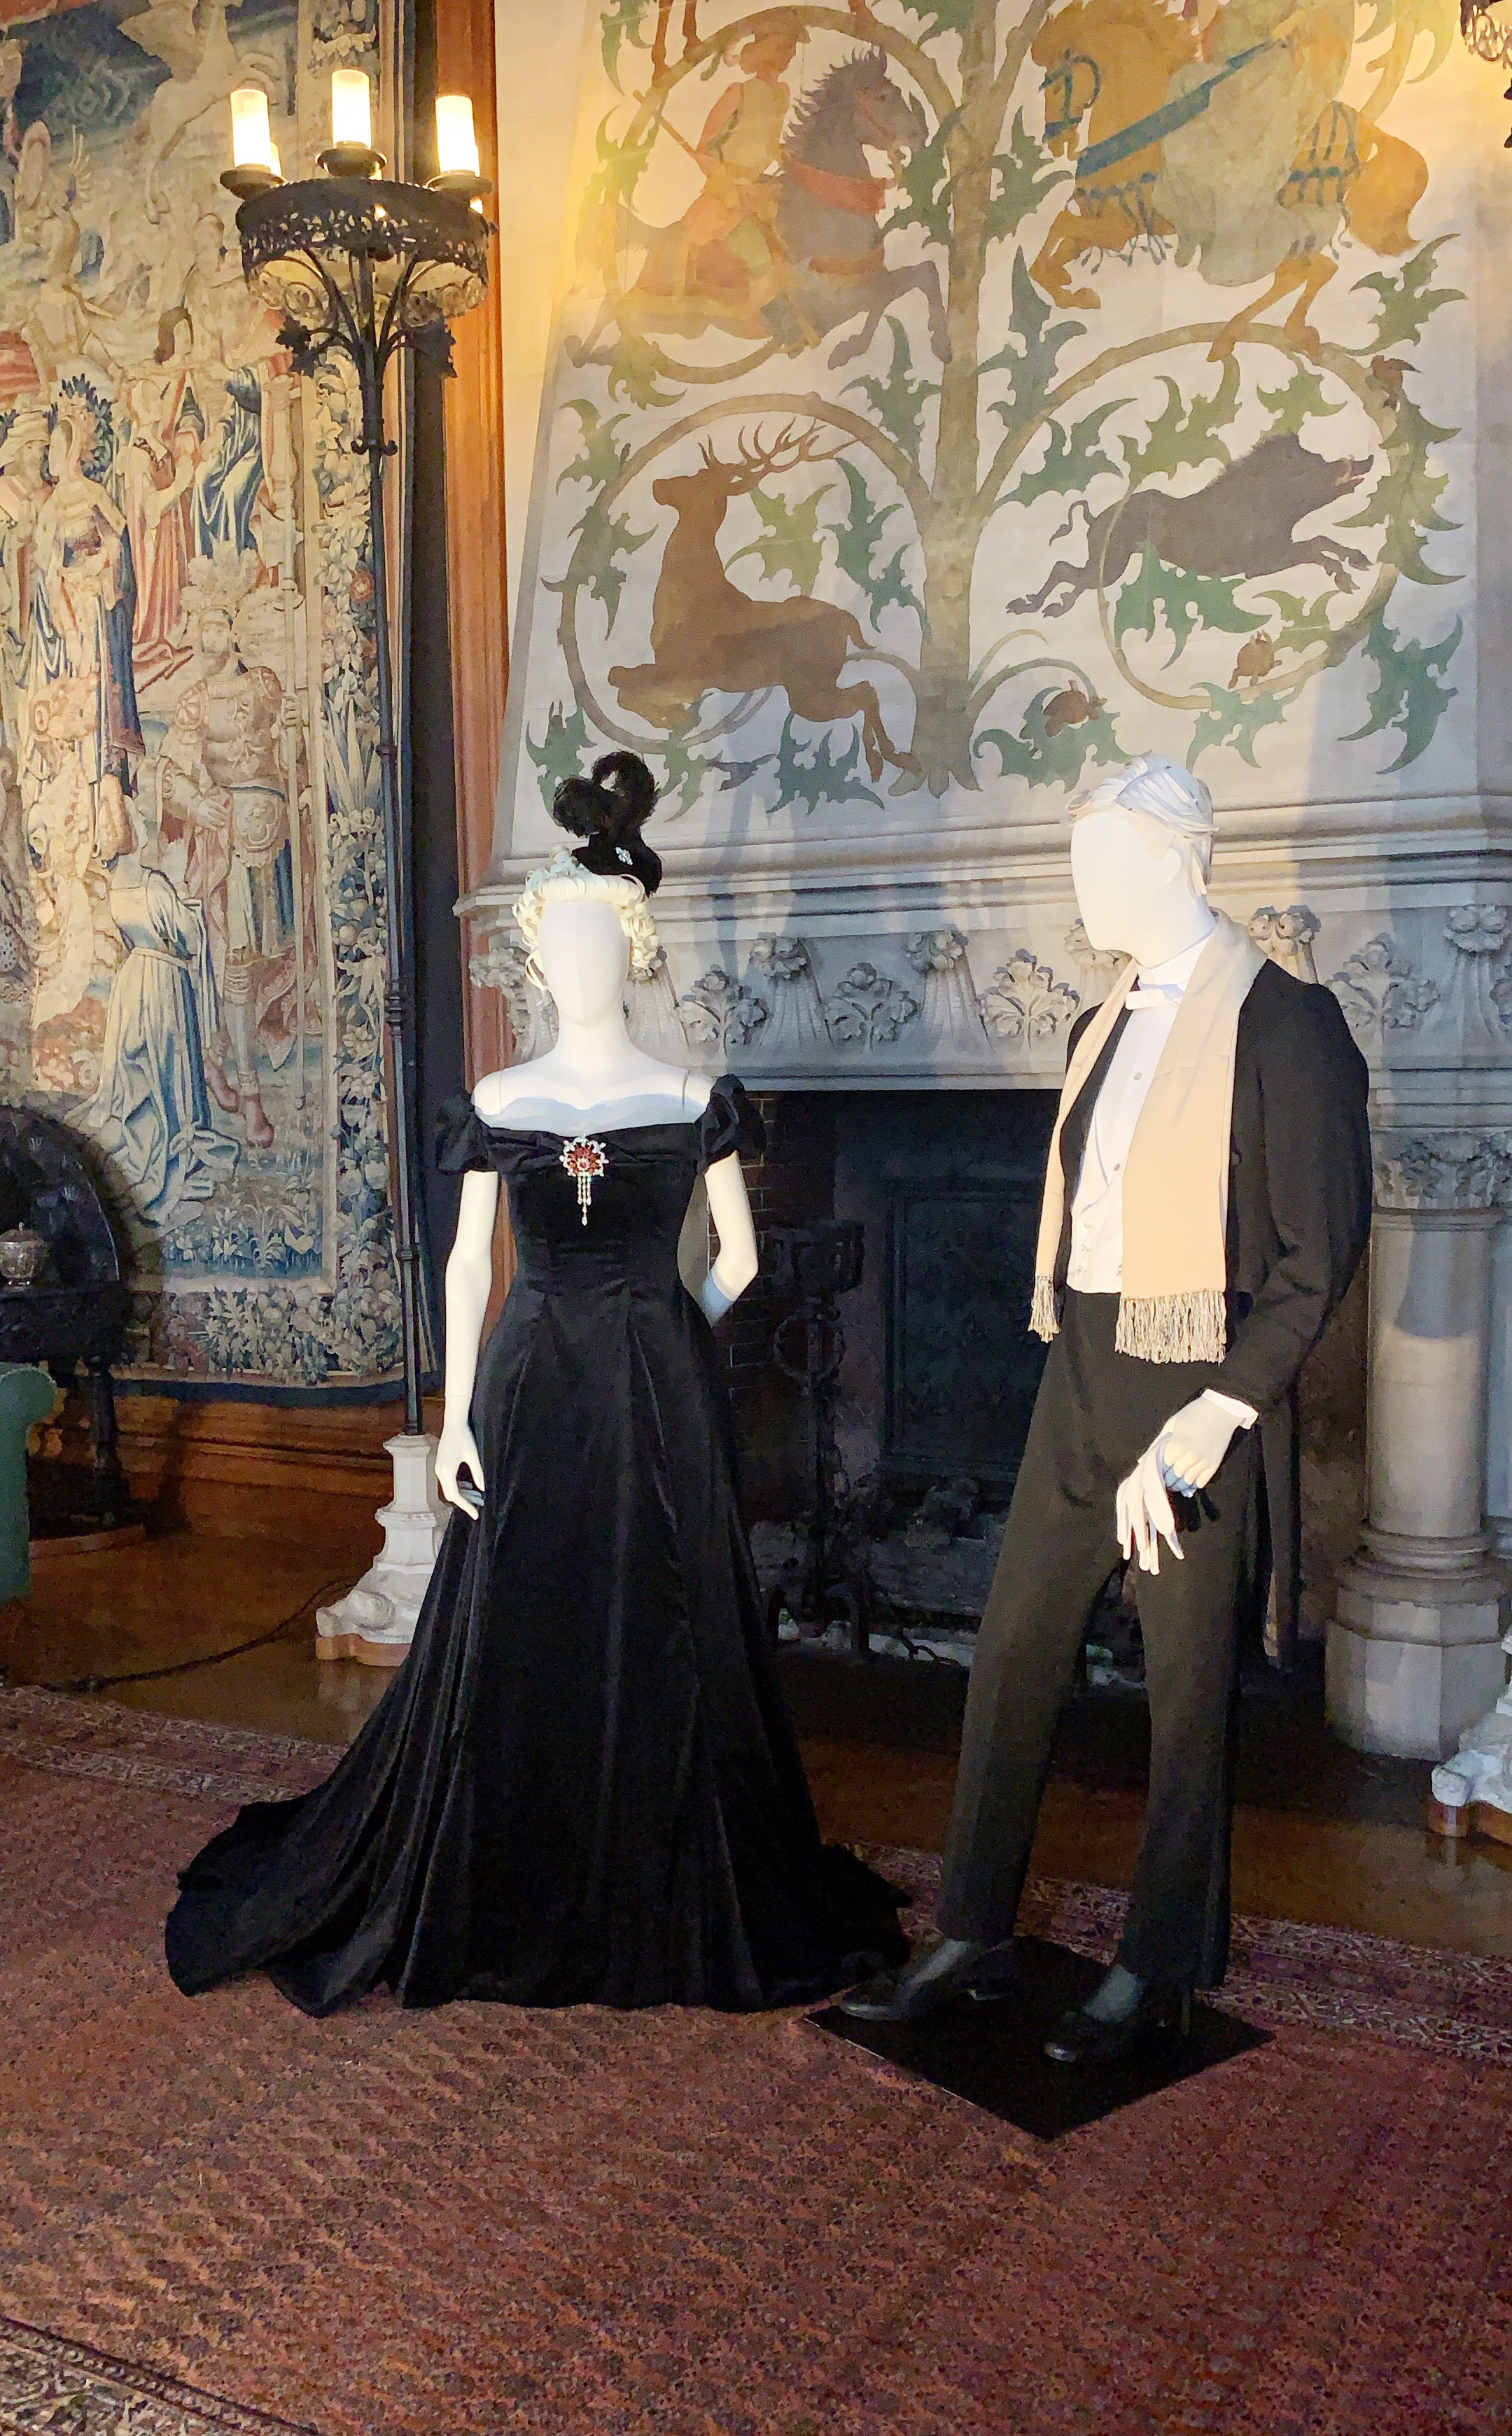 I was most excited to visit Biltmore House this trip for their newest exhibition, A Vanderbilt House Party – The Gilded Age